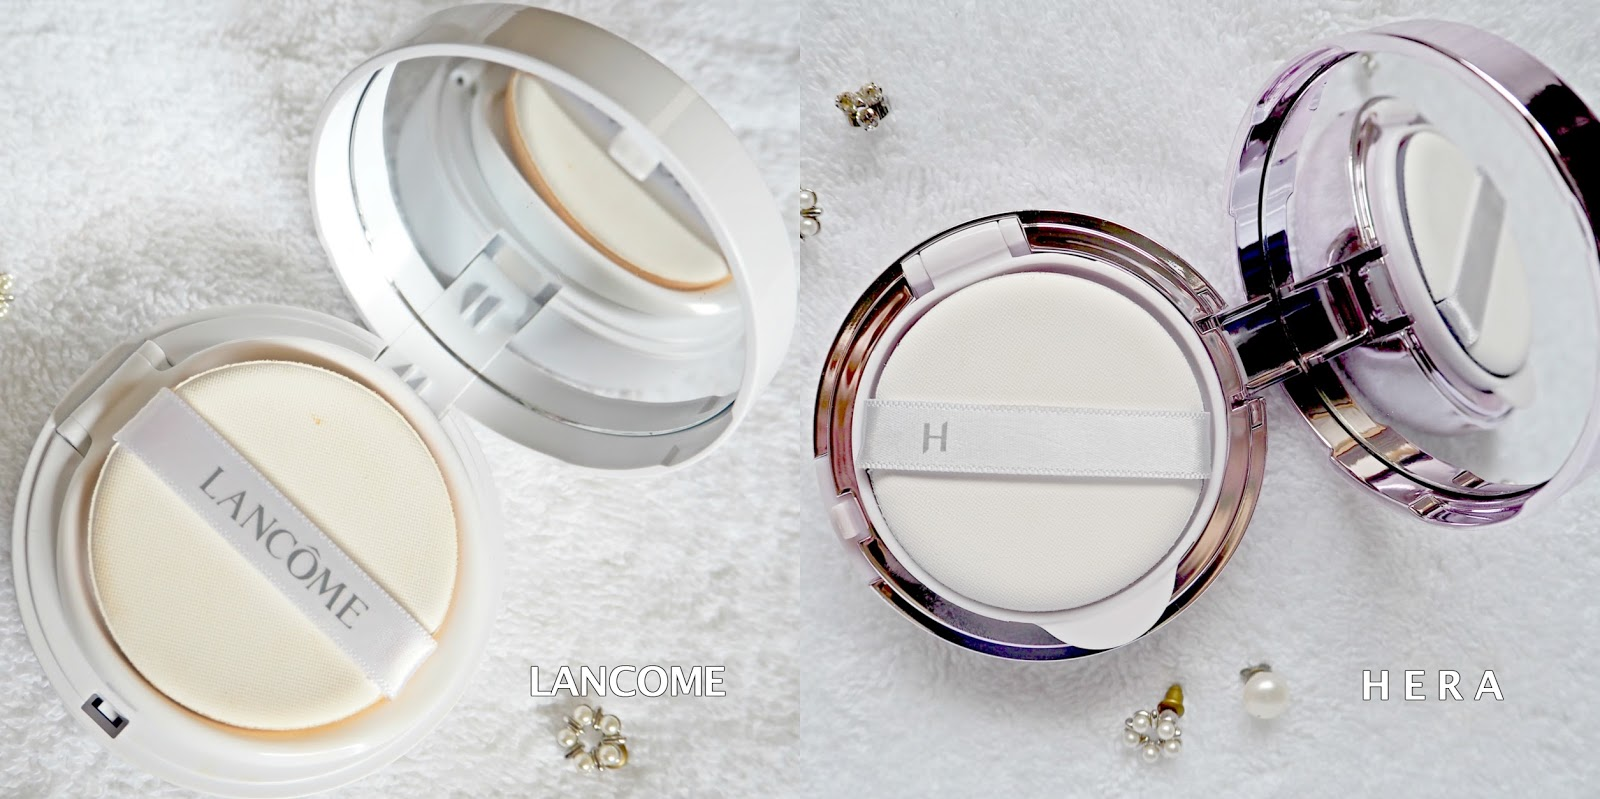 HERA UV MIST CUSHION